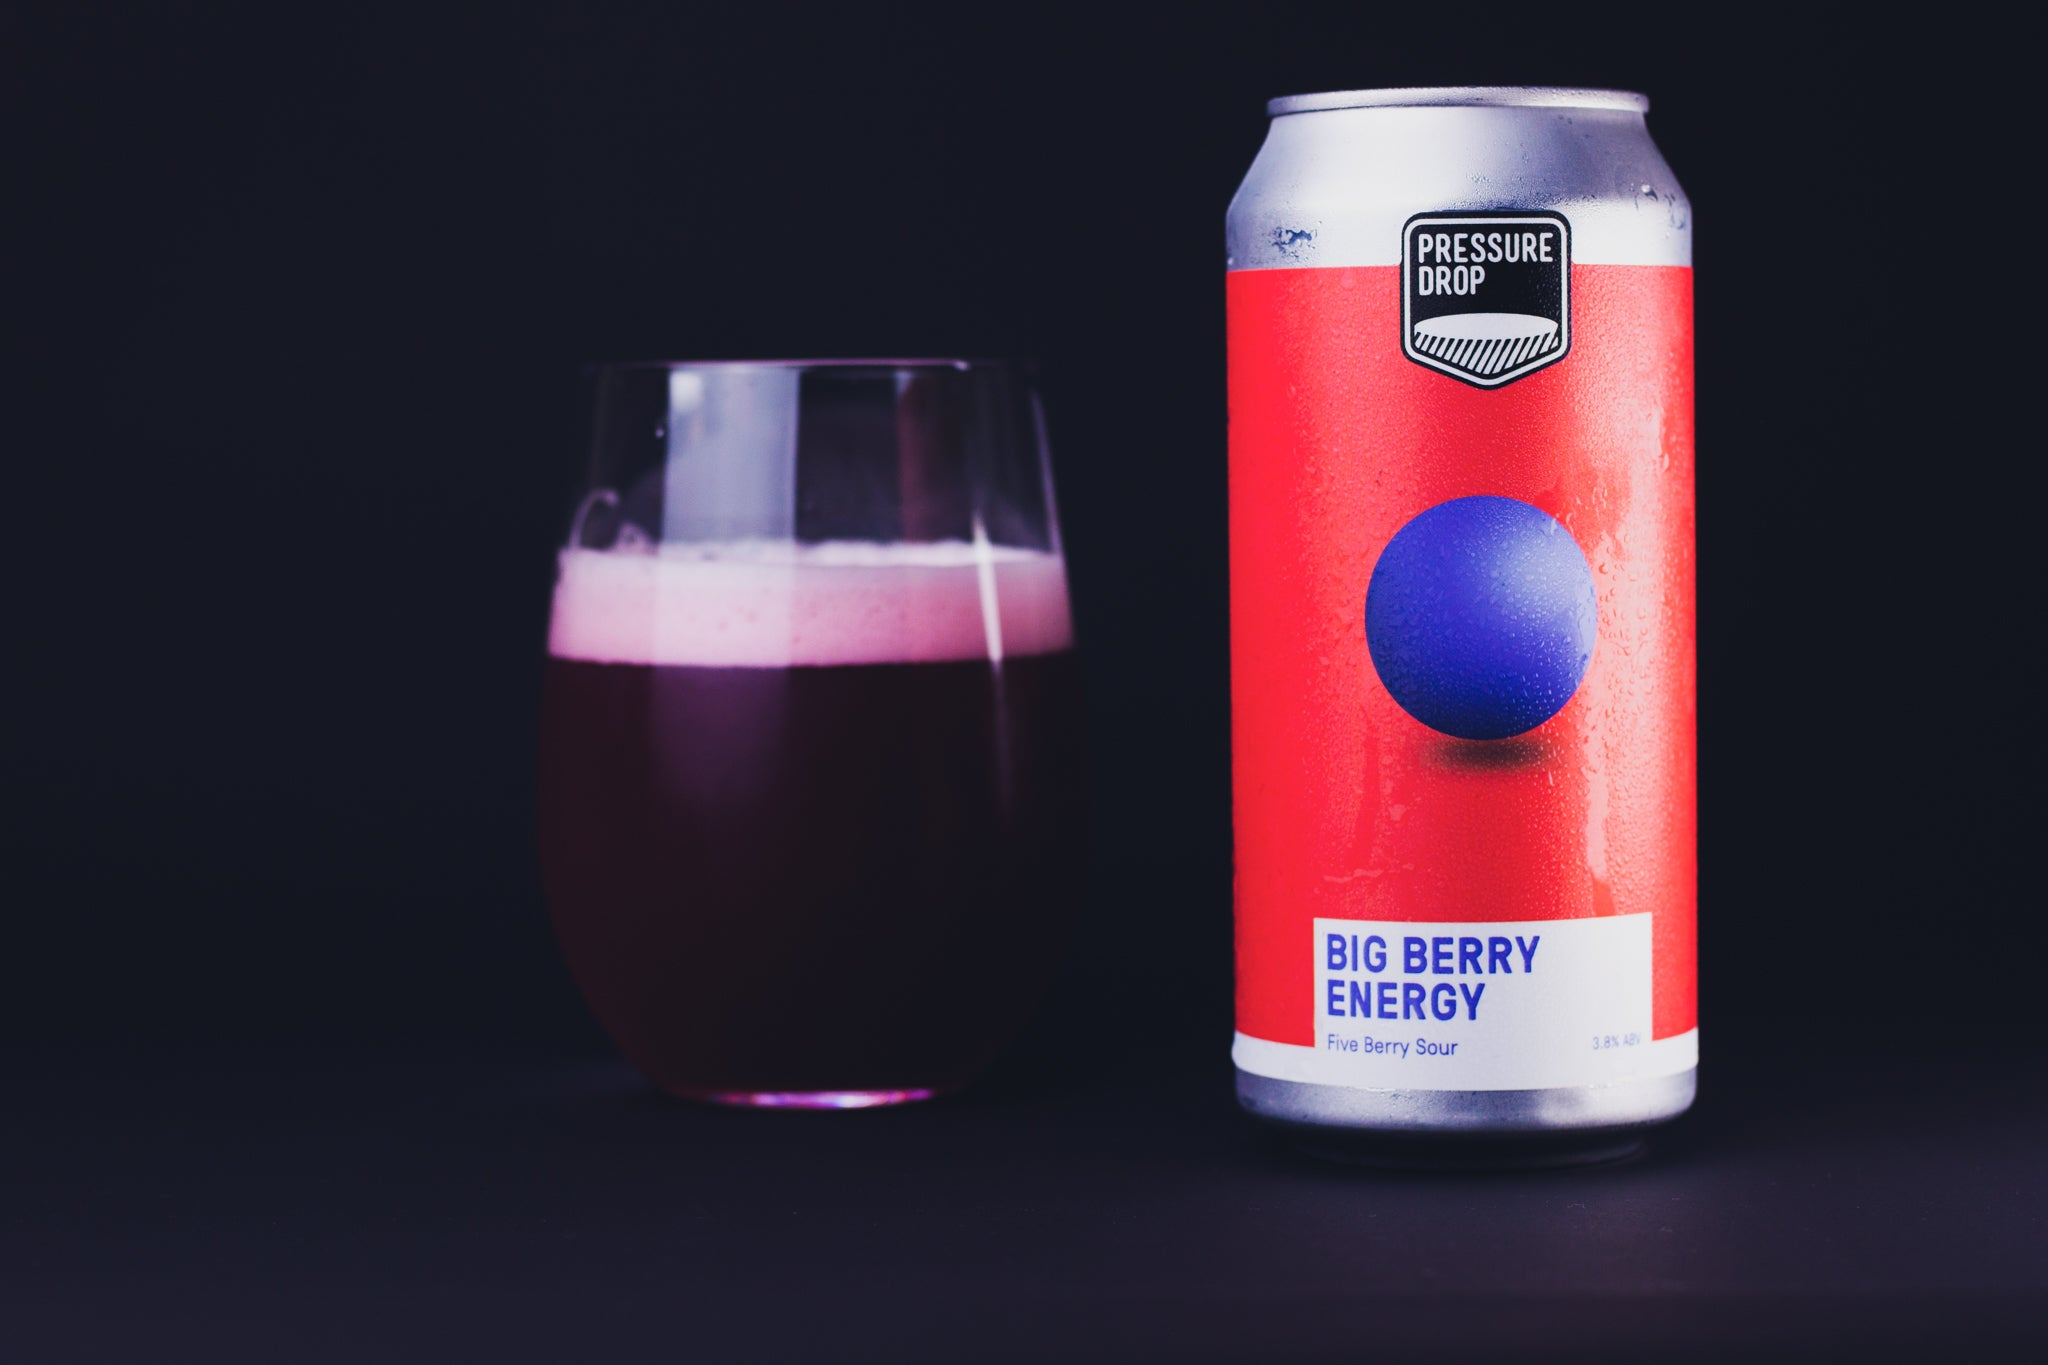 Big Berry Energy 3.8% Five Berry Sour